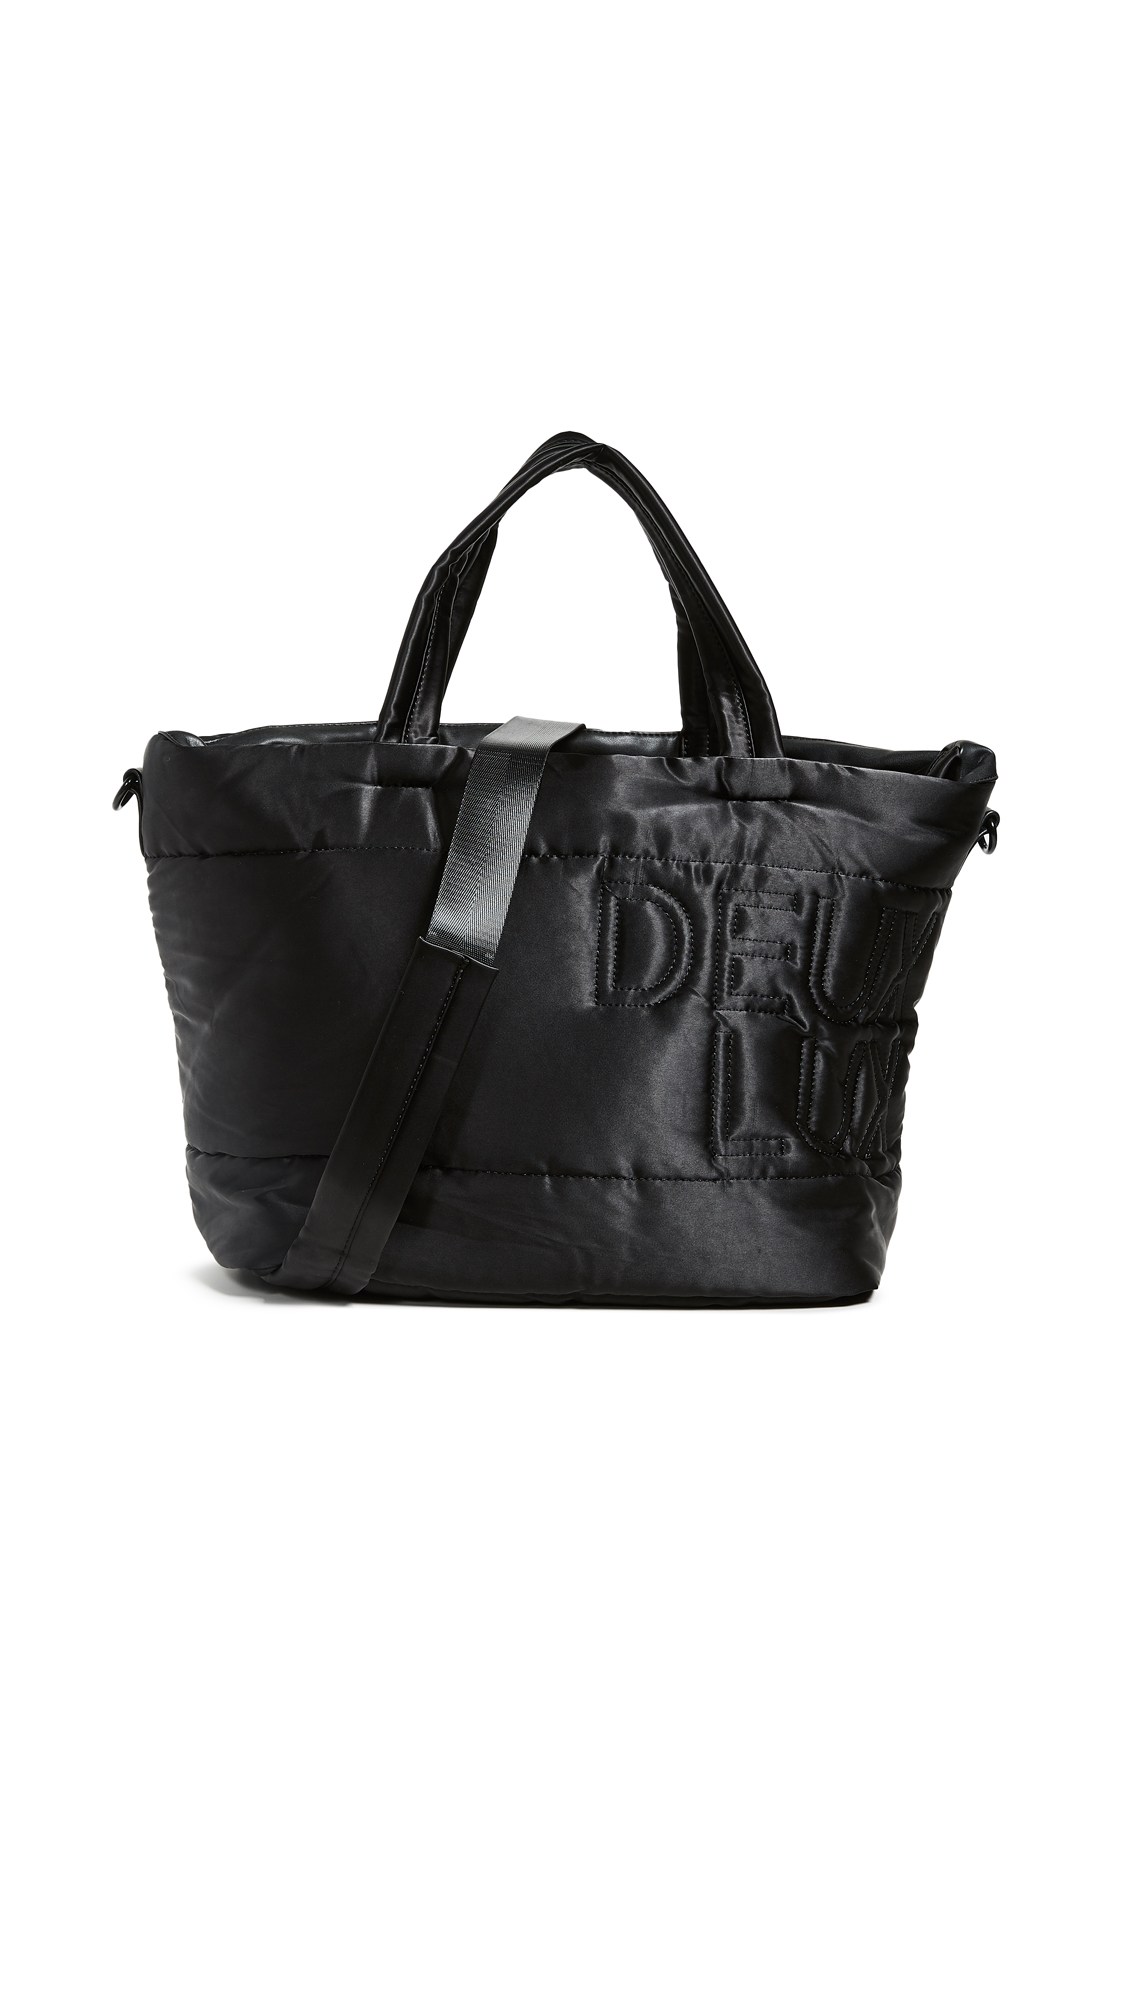 Fabric: Satin Embroidered logo Zip at top Zip interior pocket Patch interior pockets Removable strap Lined Weight: 21oz / 0.6kg Imported, China Measurements Height: 11.75in / 30cm Length: 13.75in / 35cm Depth: 8.75in / 22cm Strap drop: 22in / 56cm Handle drop: 6.25in / 16cm